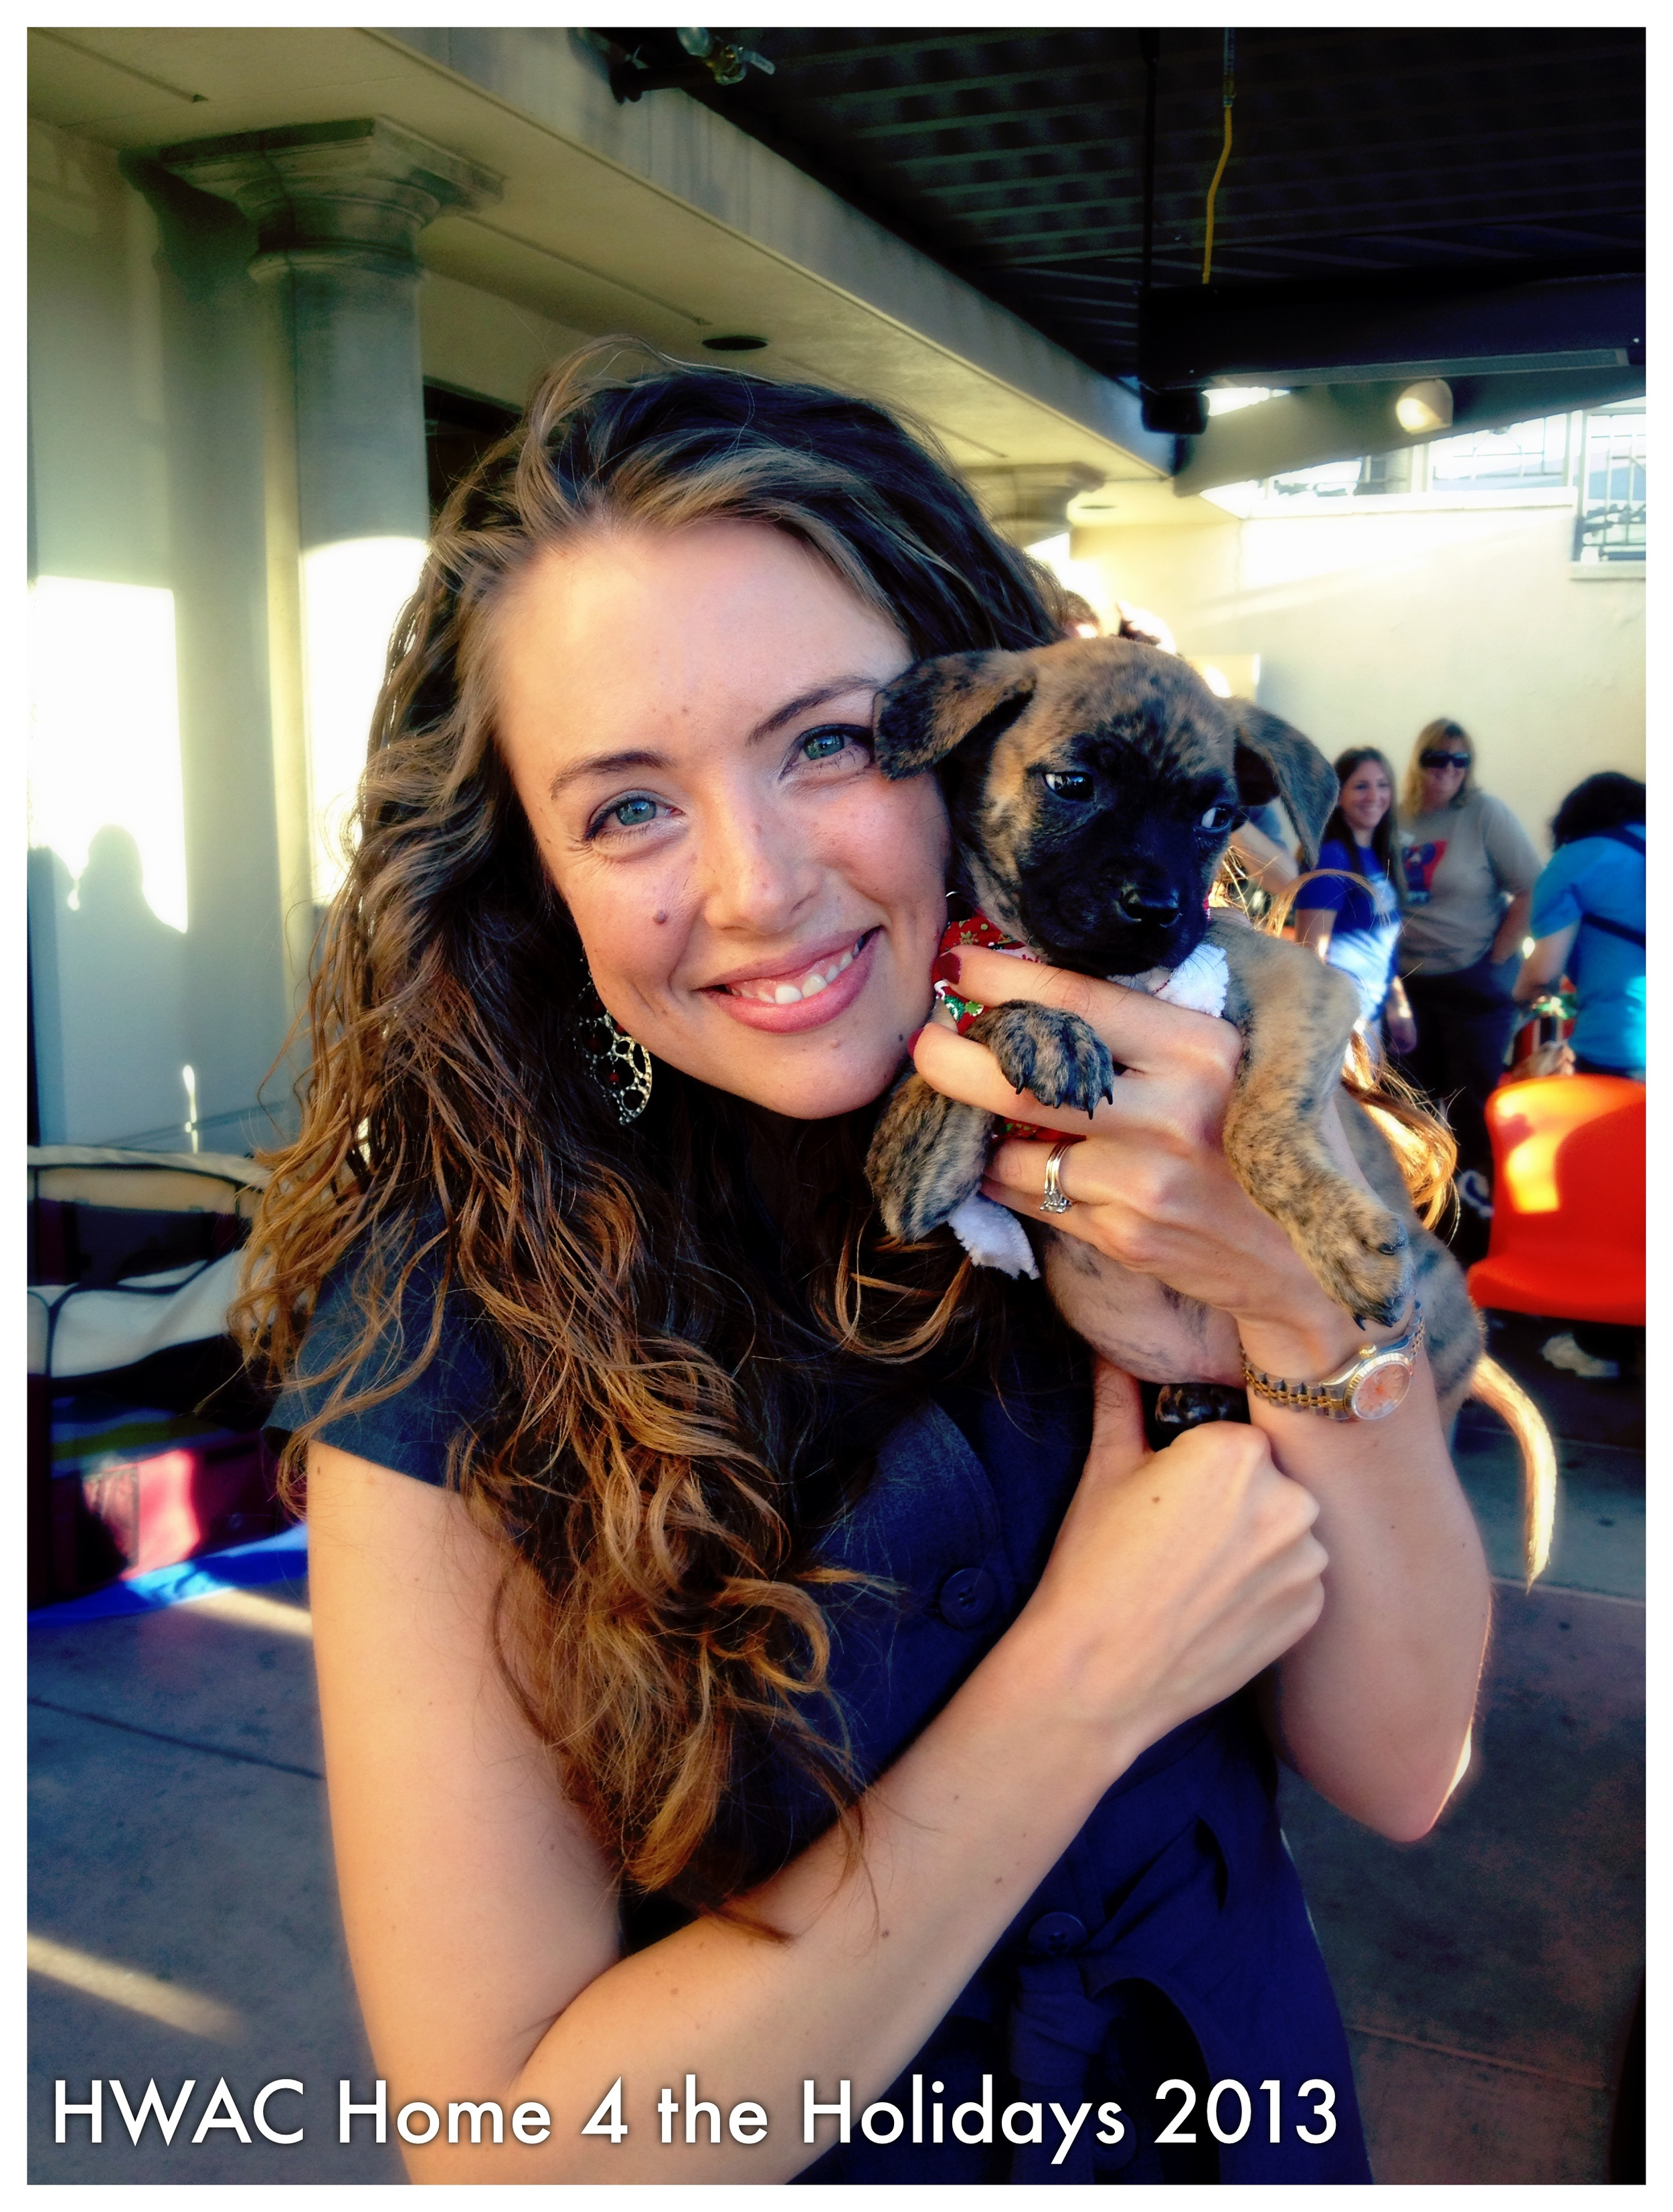 PHOTO: Amber snuggles with 9-week old puppy, up for adoption at HWAC